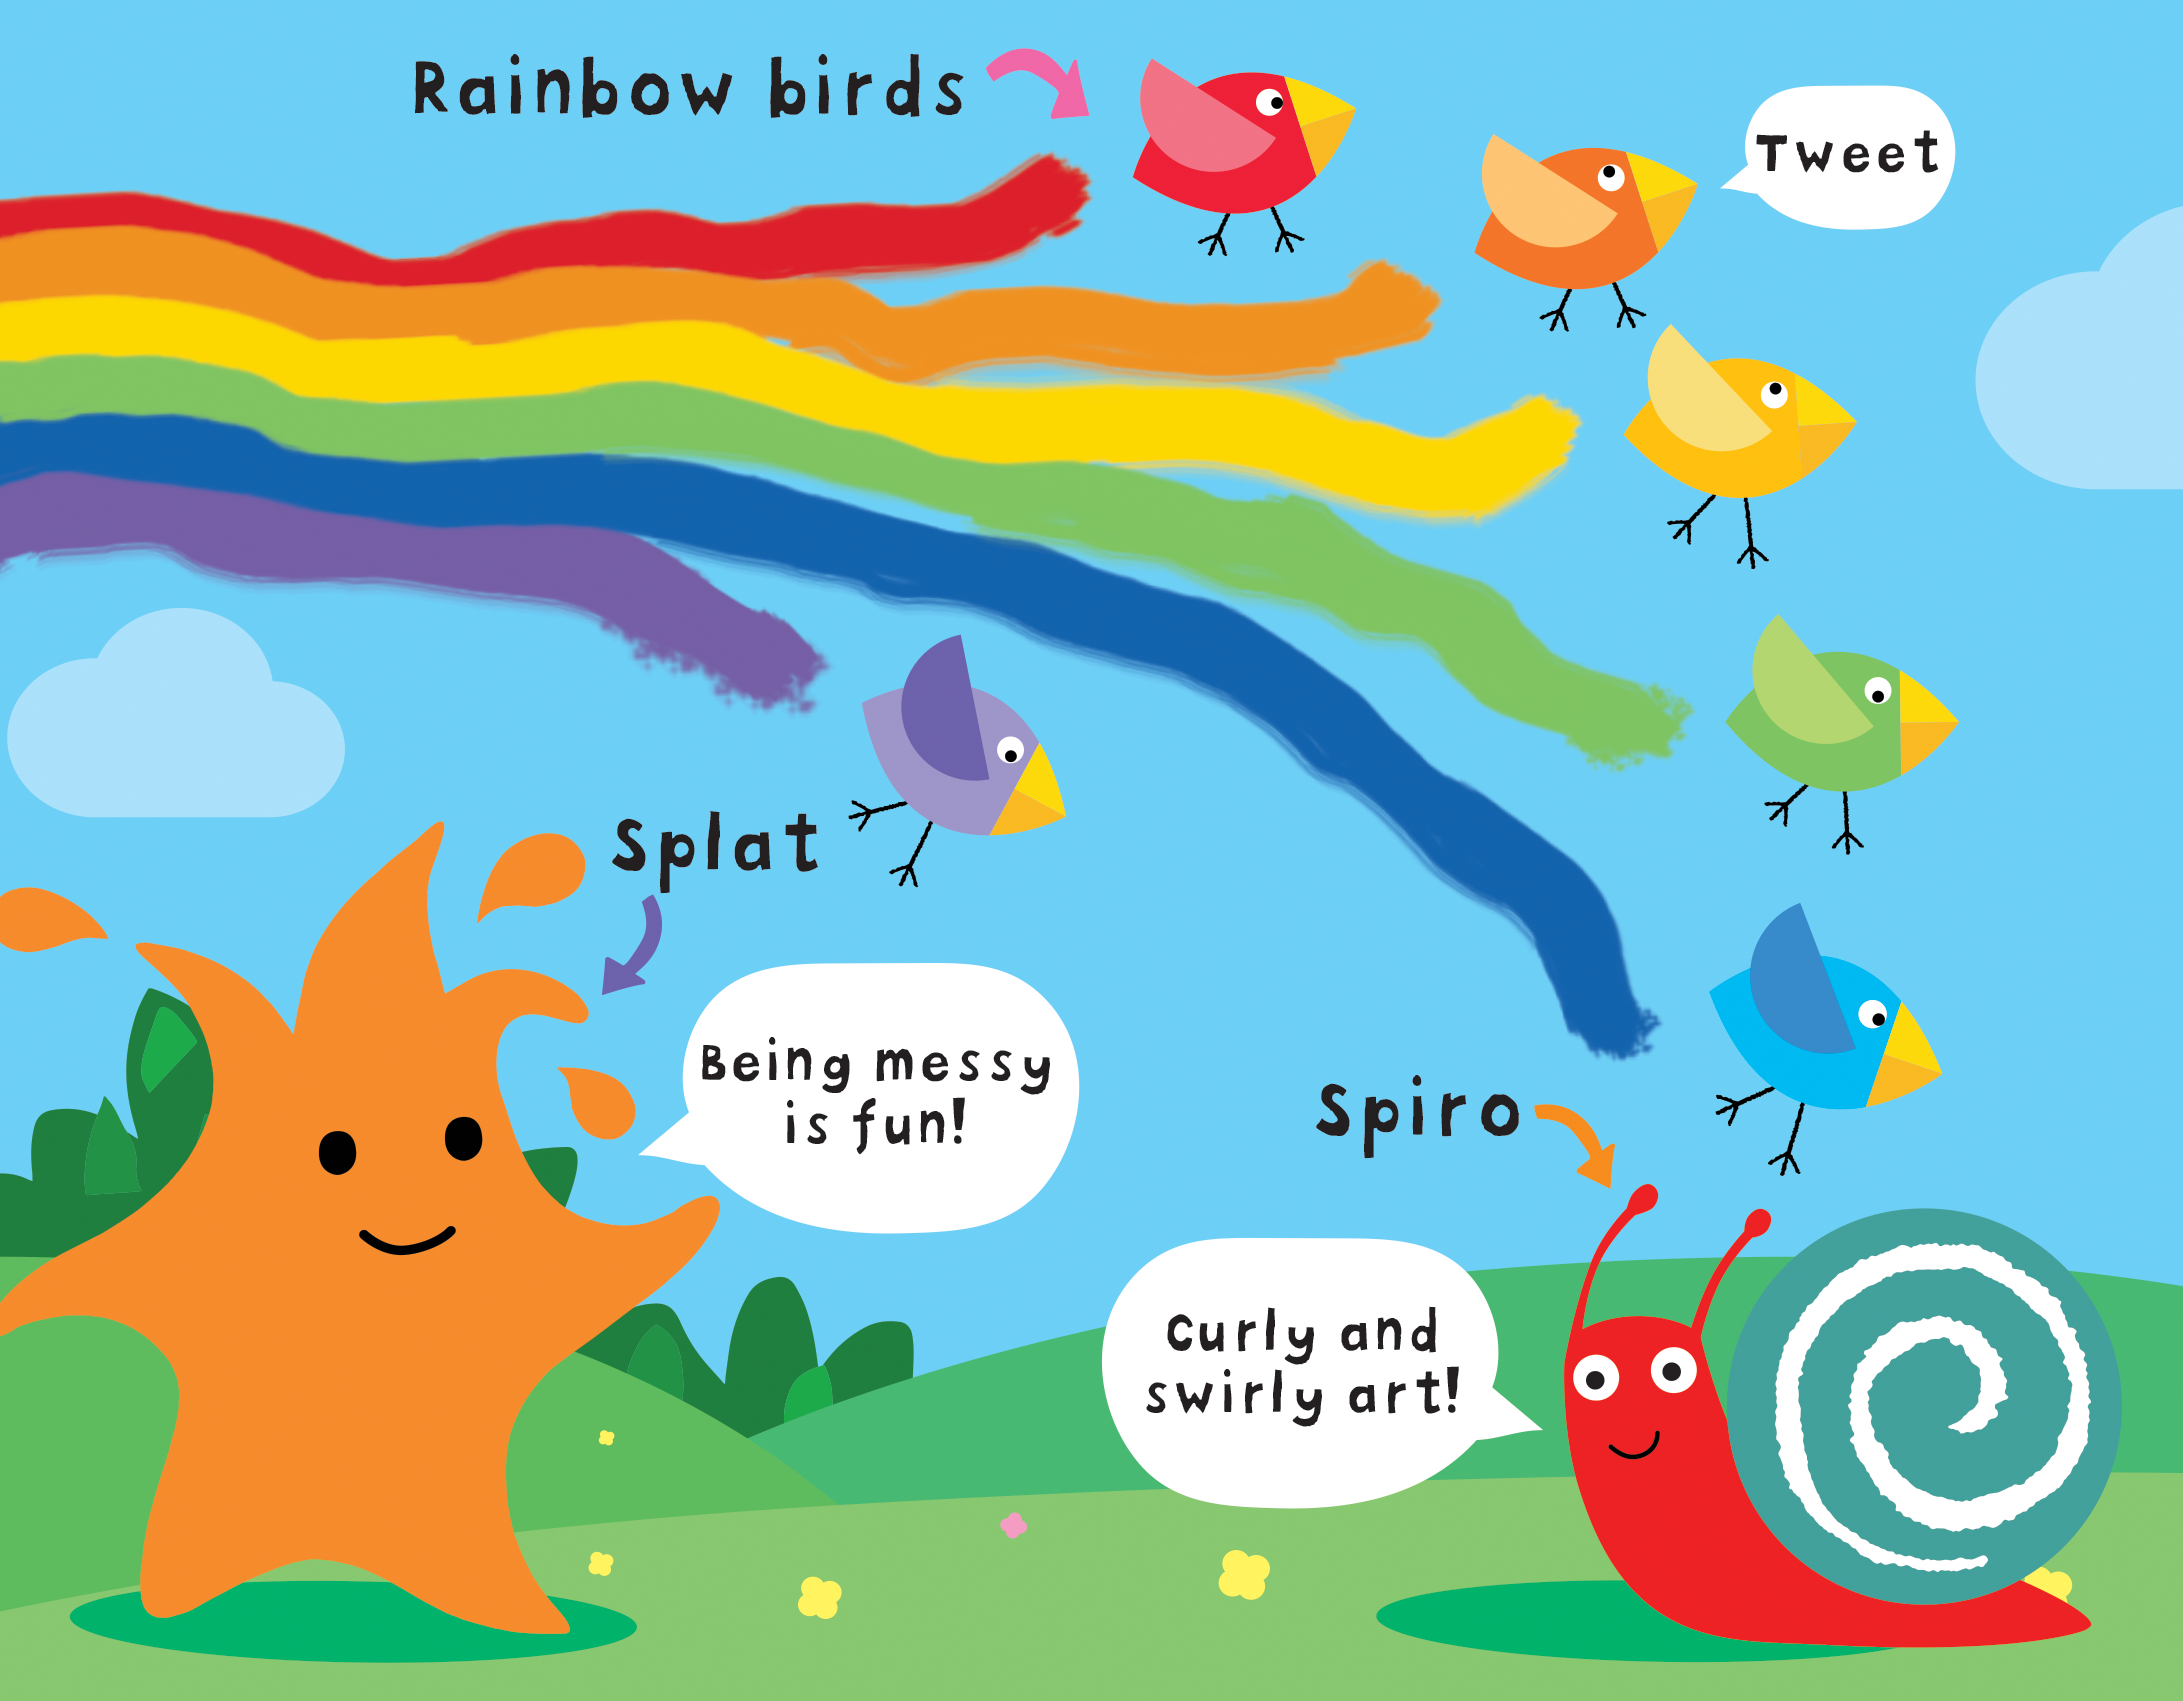 Rainbow birds, Splat and Spiro